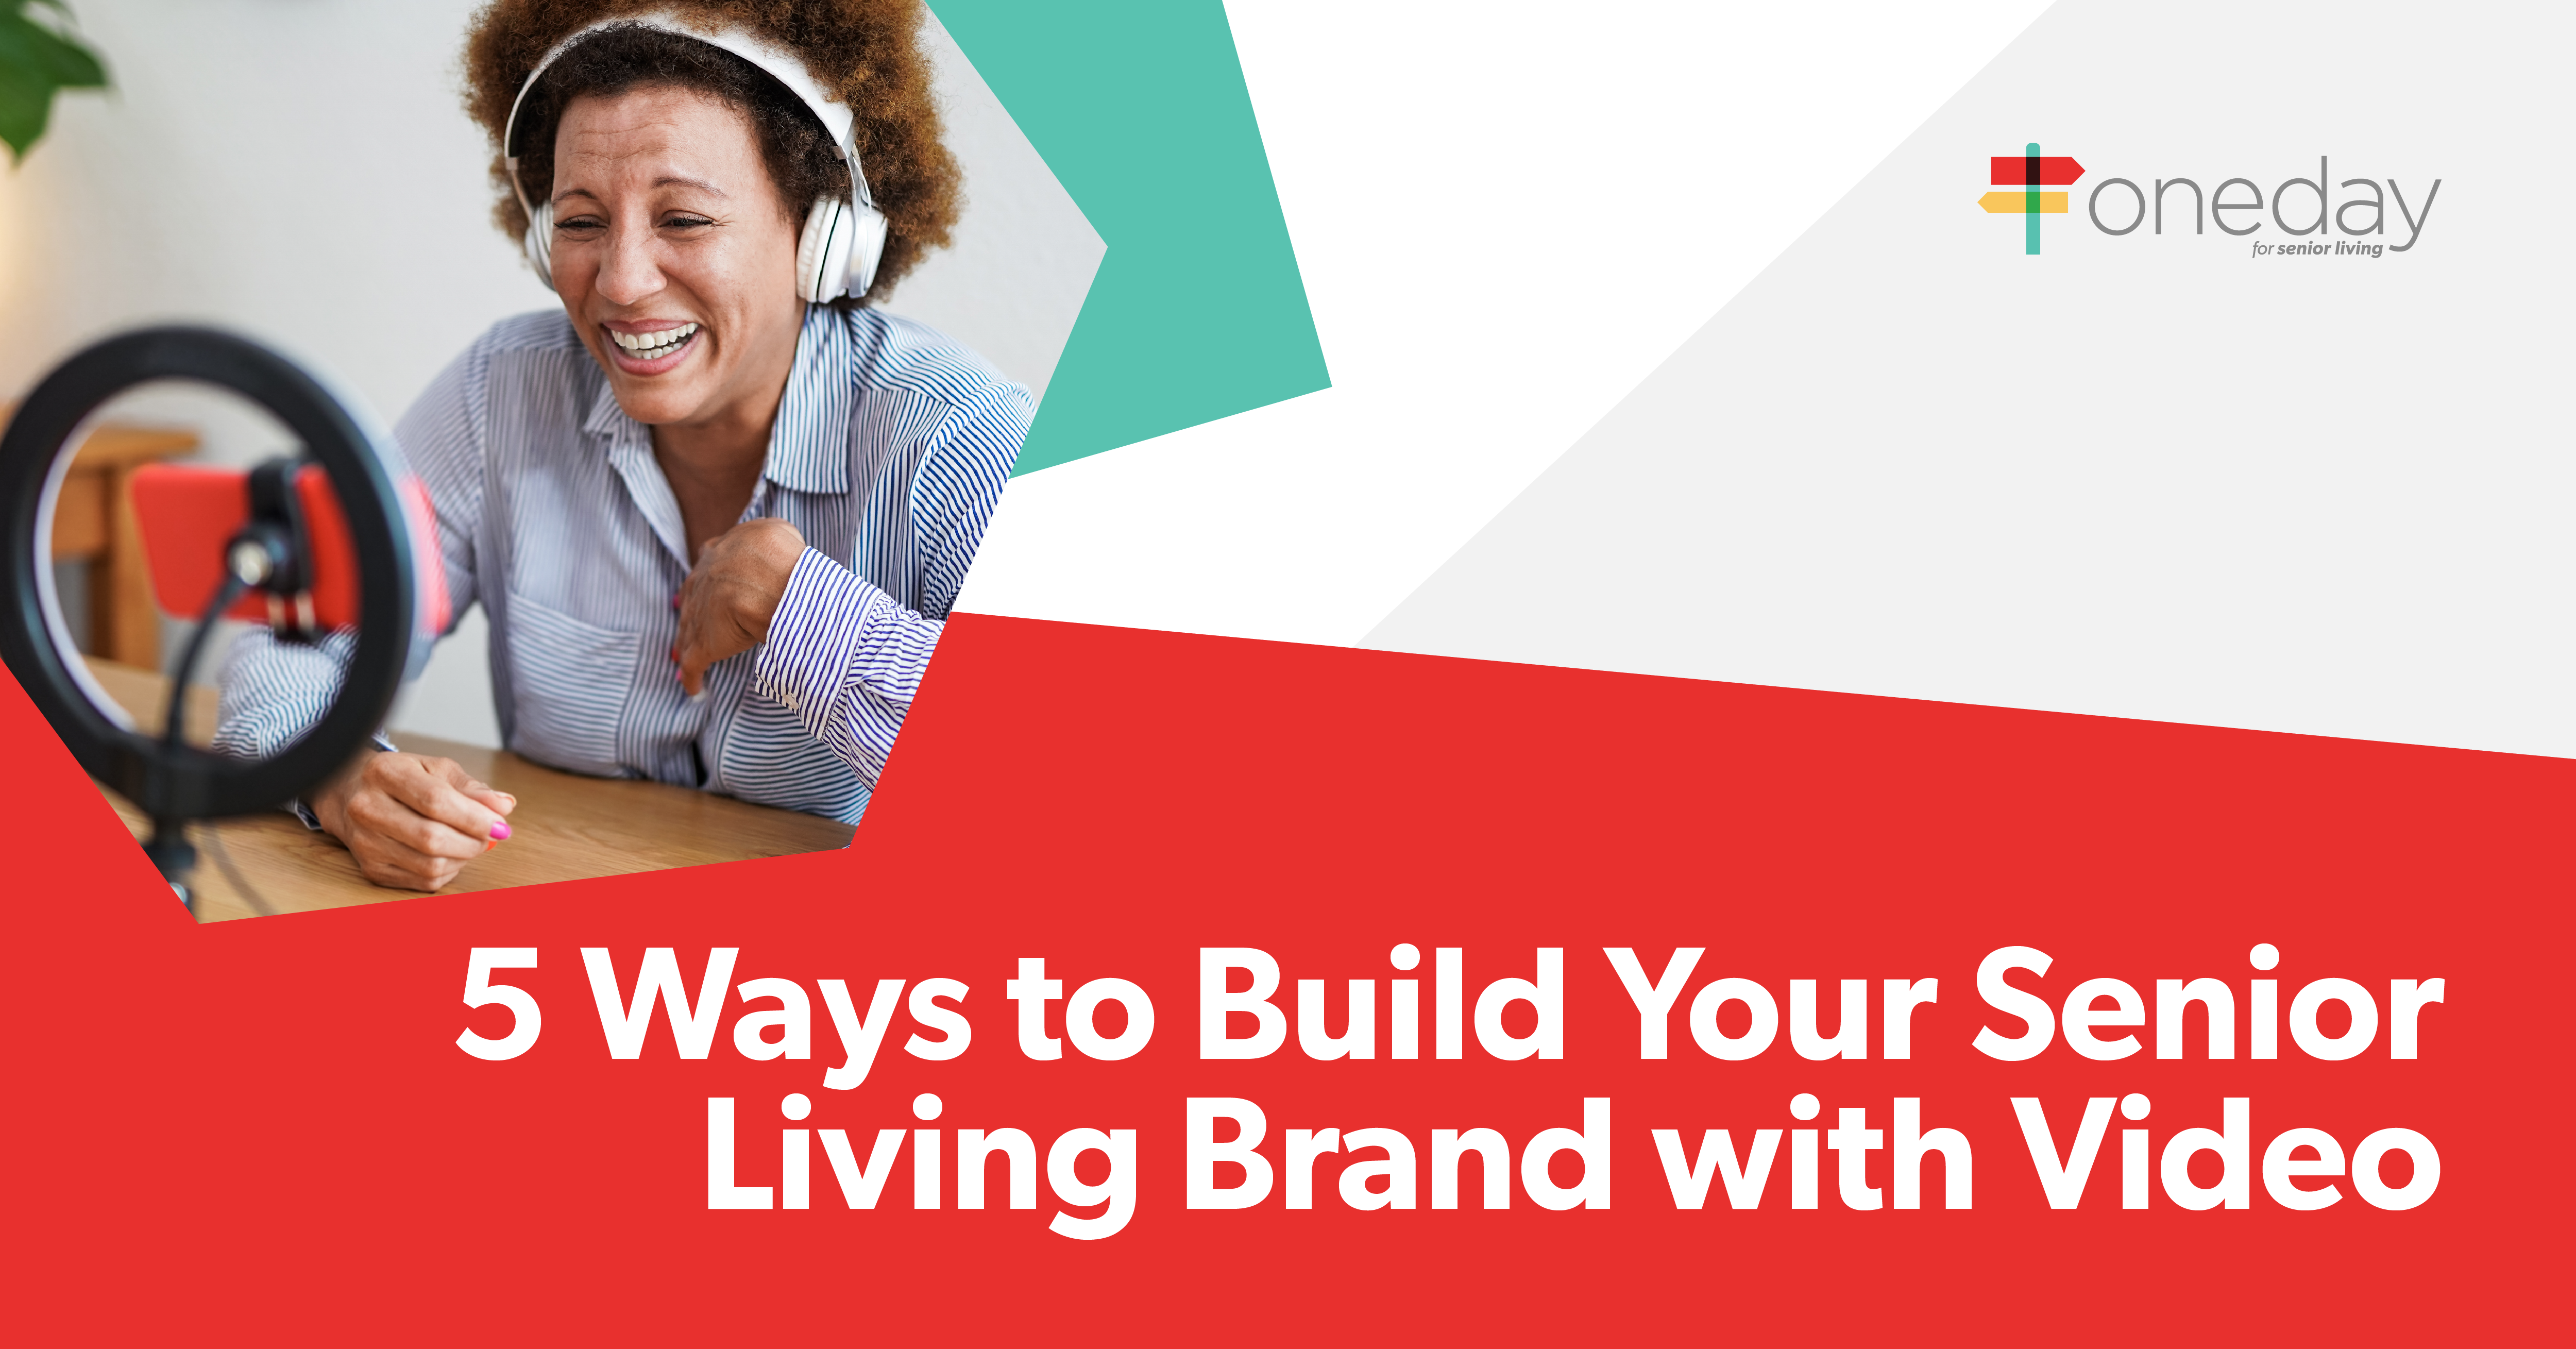 Insights on the many ways video content can help senior living sales and marketing teams develop their brand and drive brand awareness.